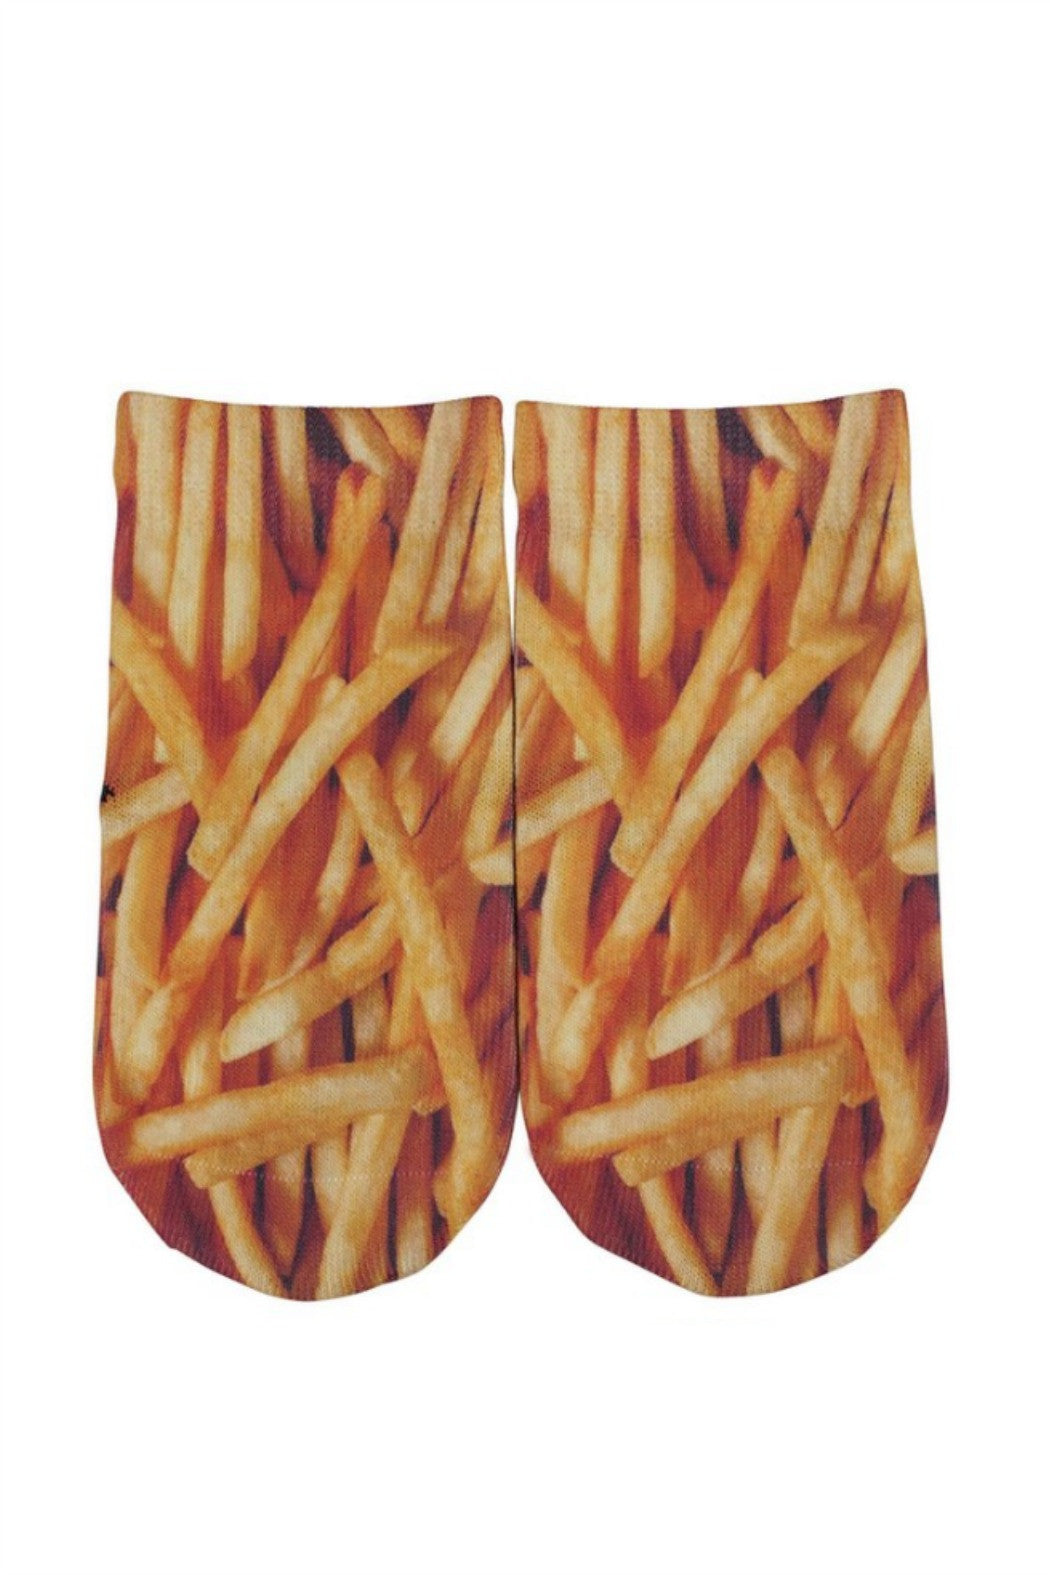 Me in Mind - Fries socks - R+D Hipster Emporium | Womens & Mens Clothing - 1